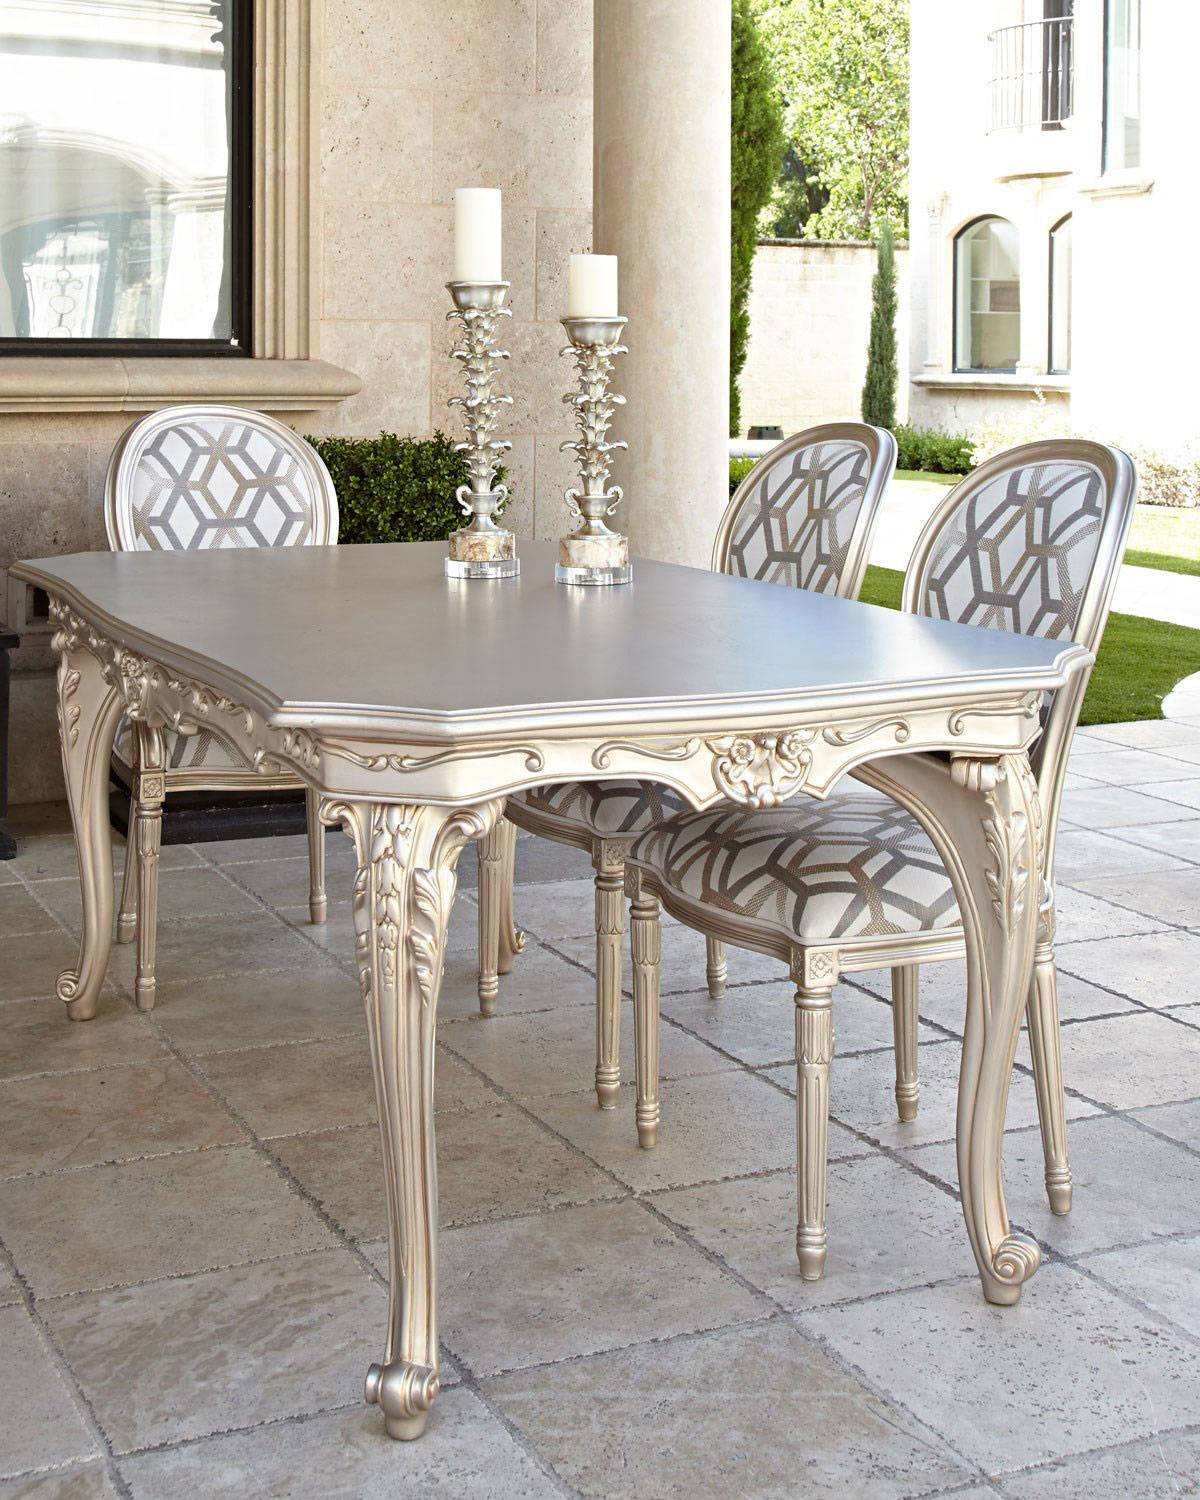 Outdoor Dining Table - CHAMPAGNE